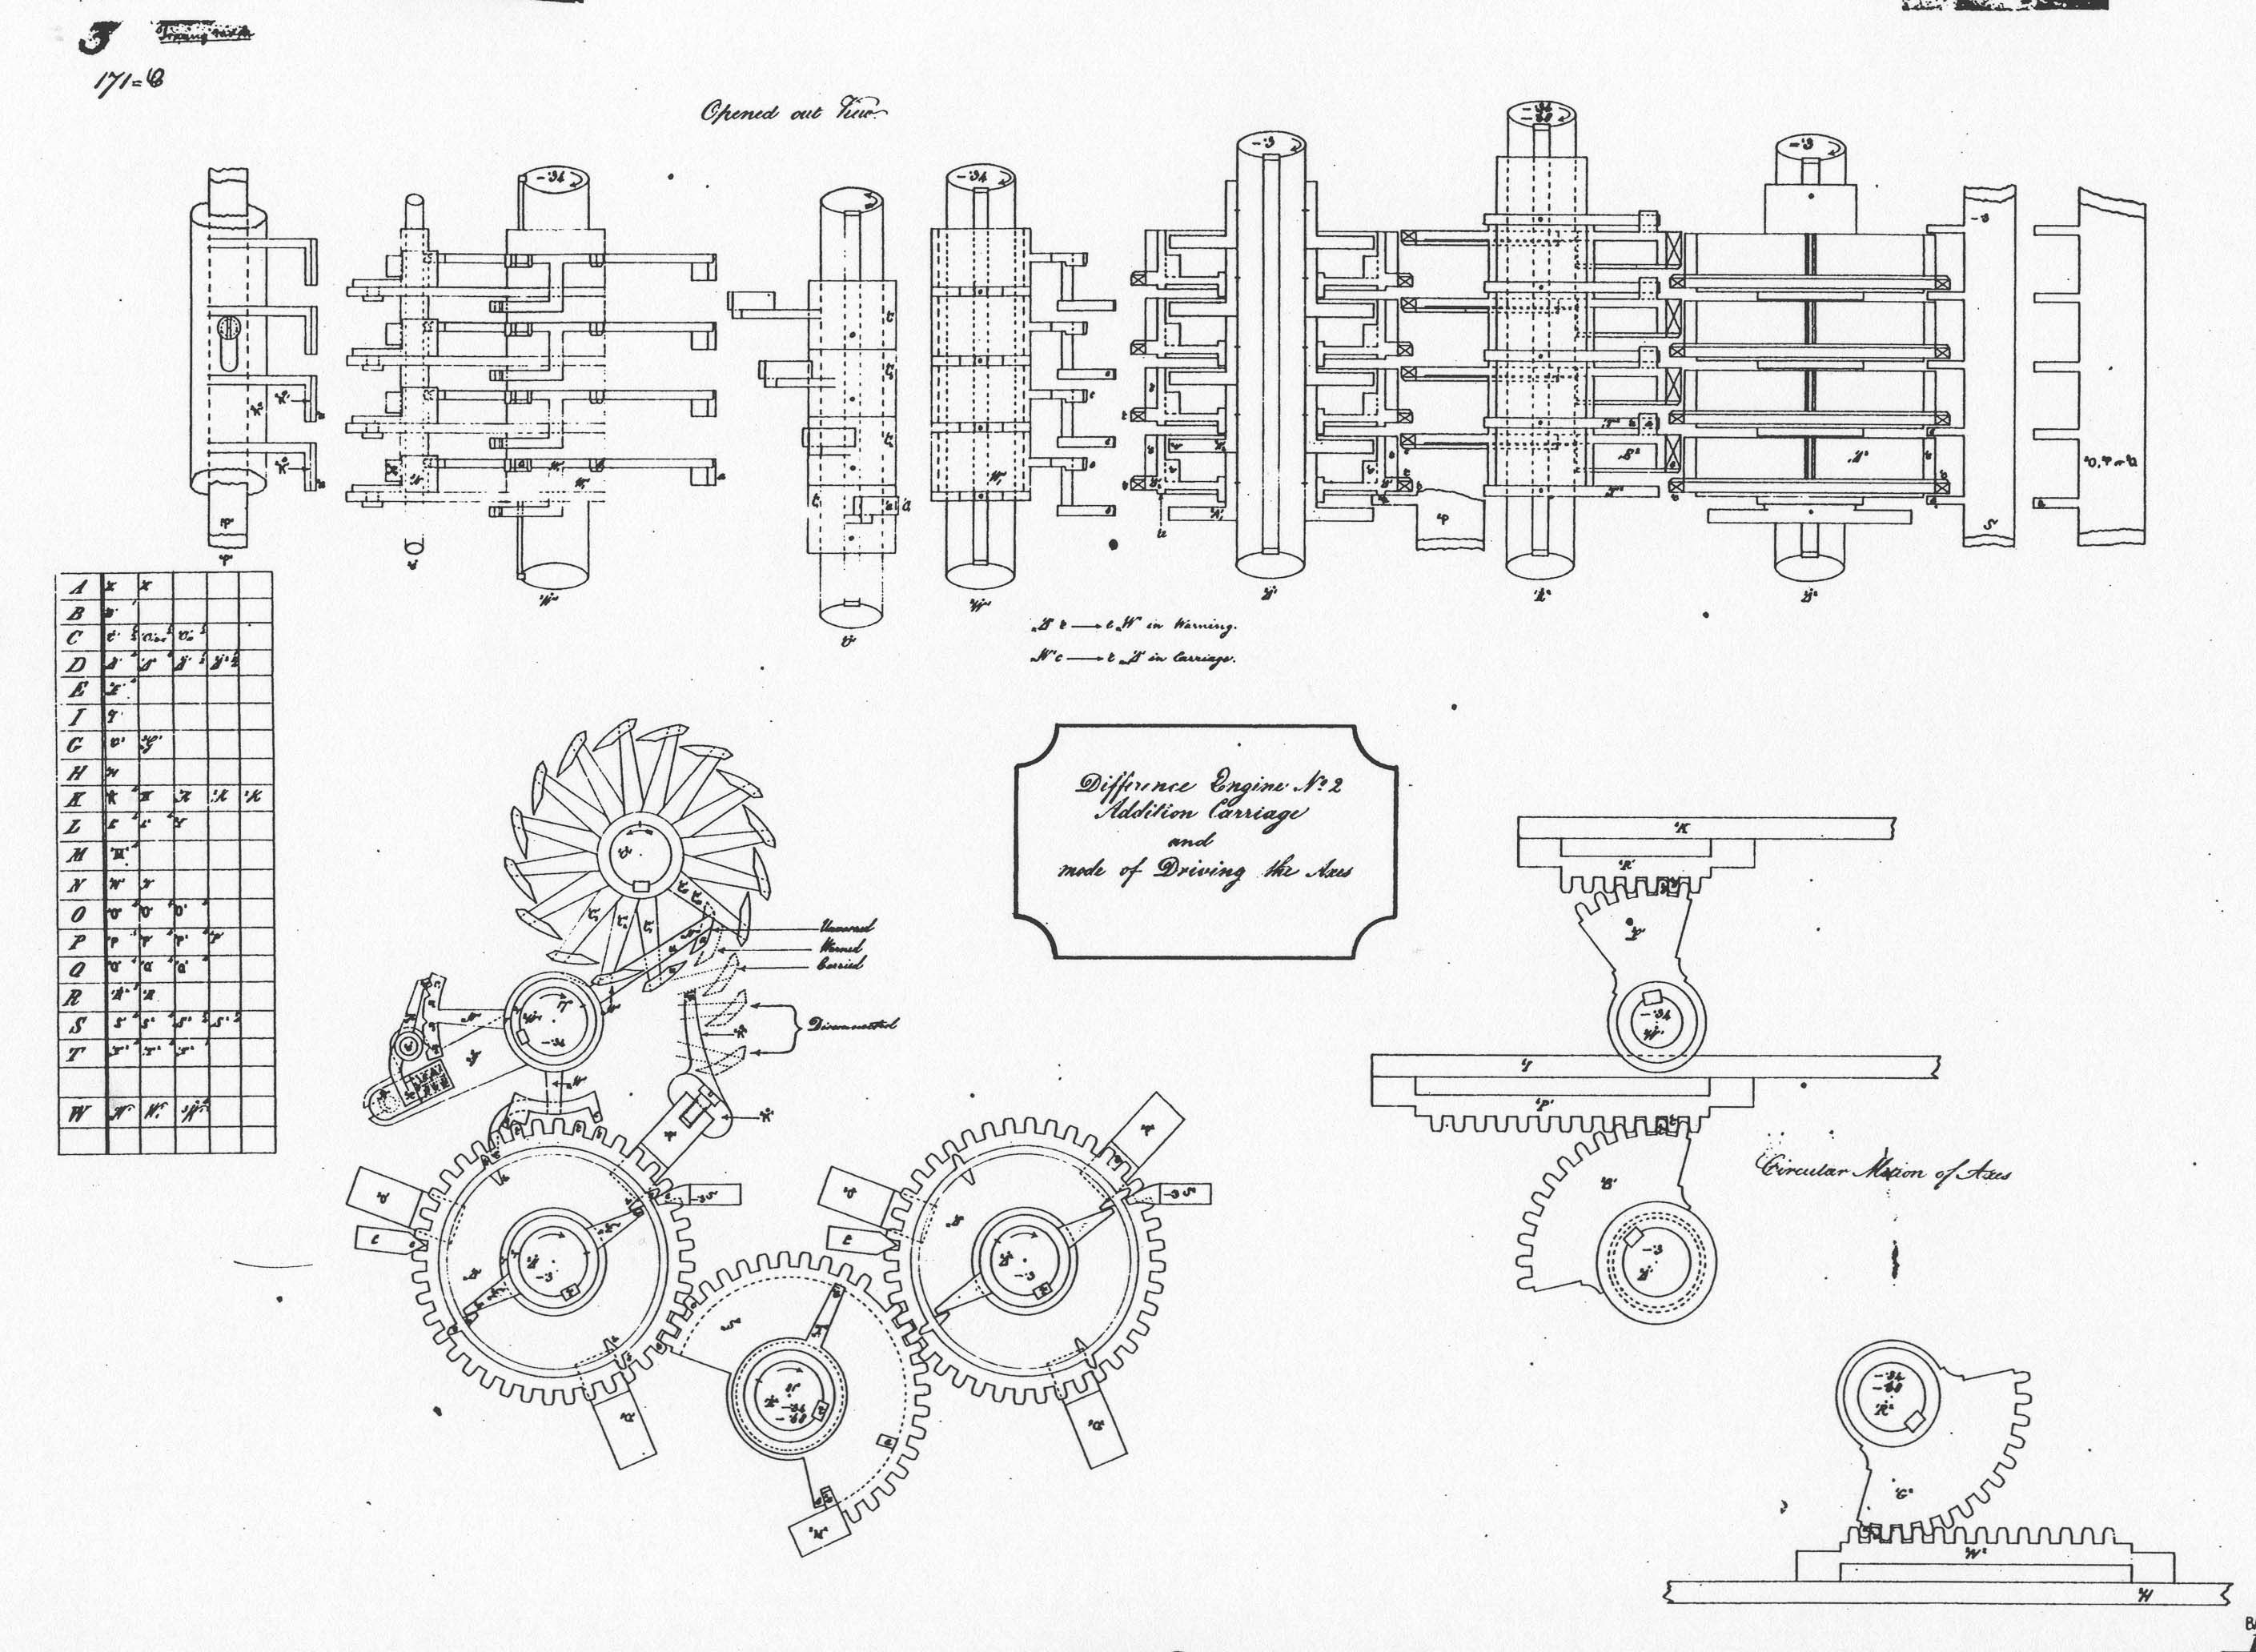 Babbage Schematic In The Lower Left Corner I Would Like